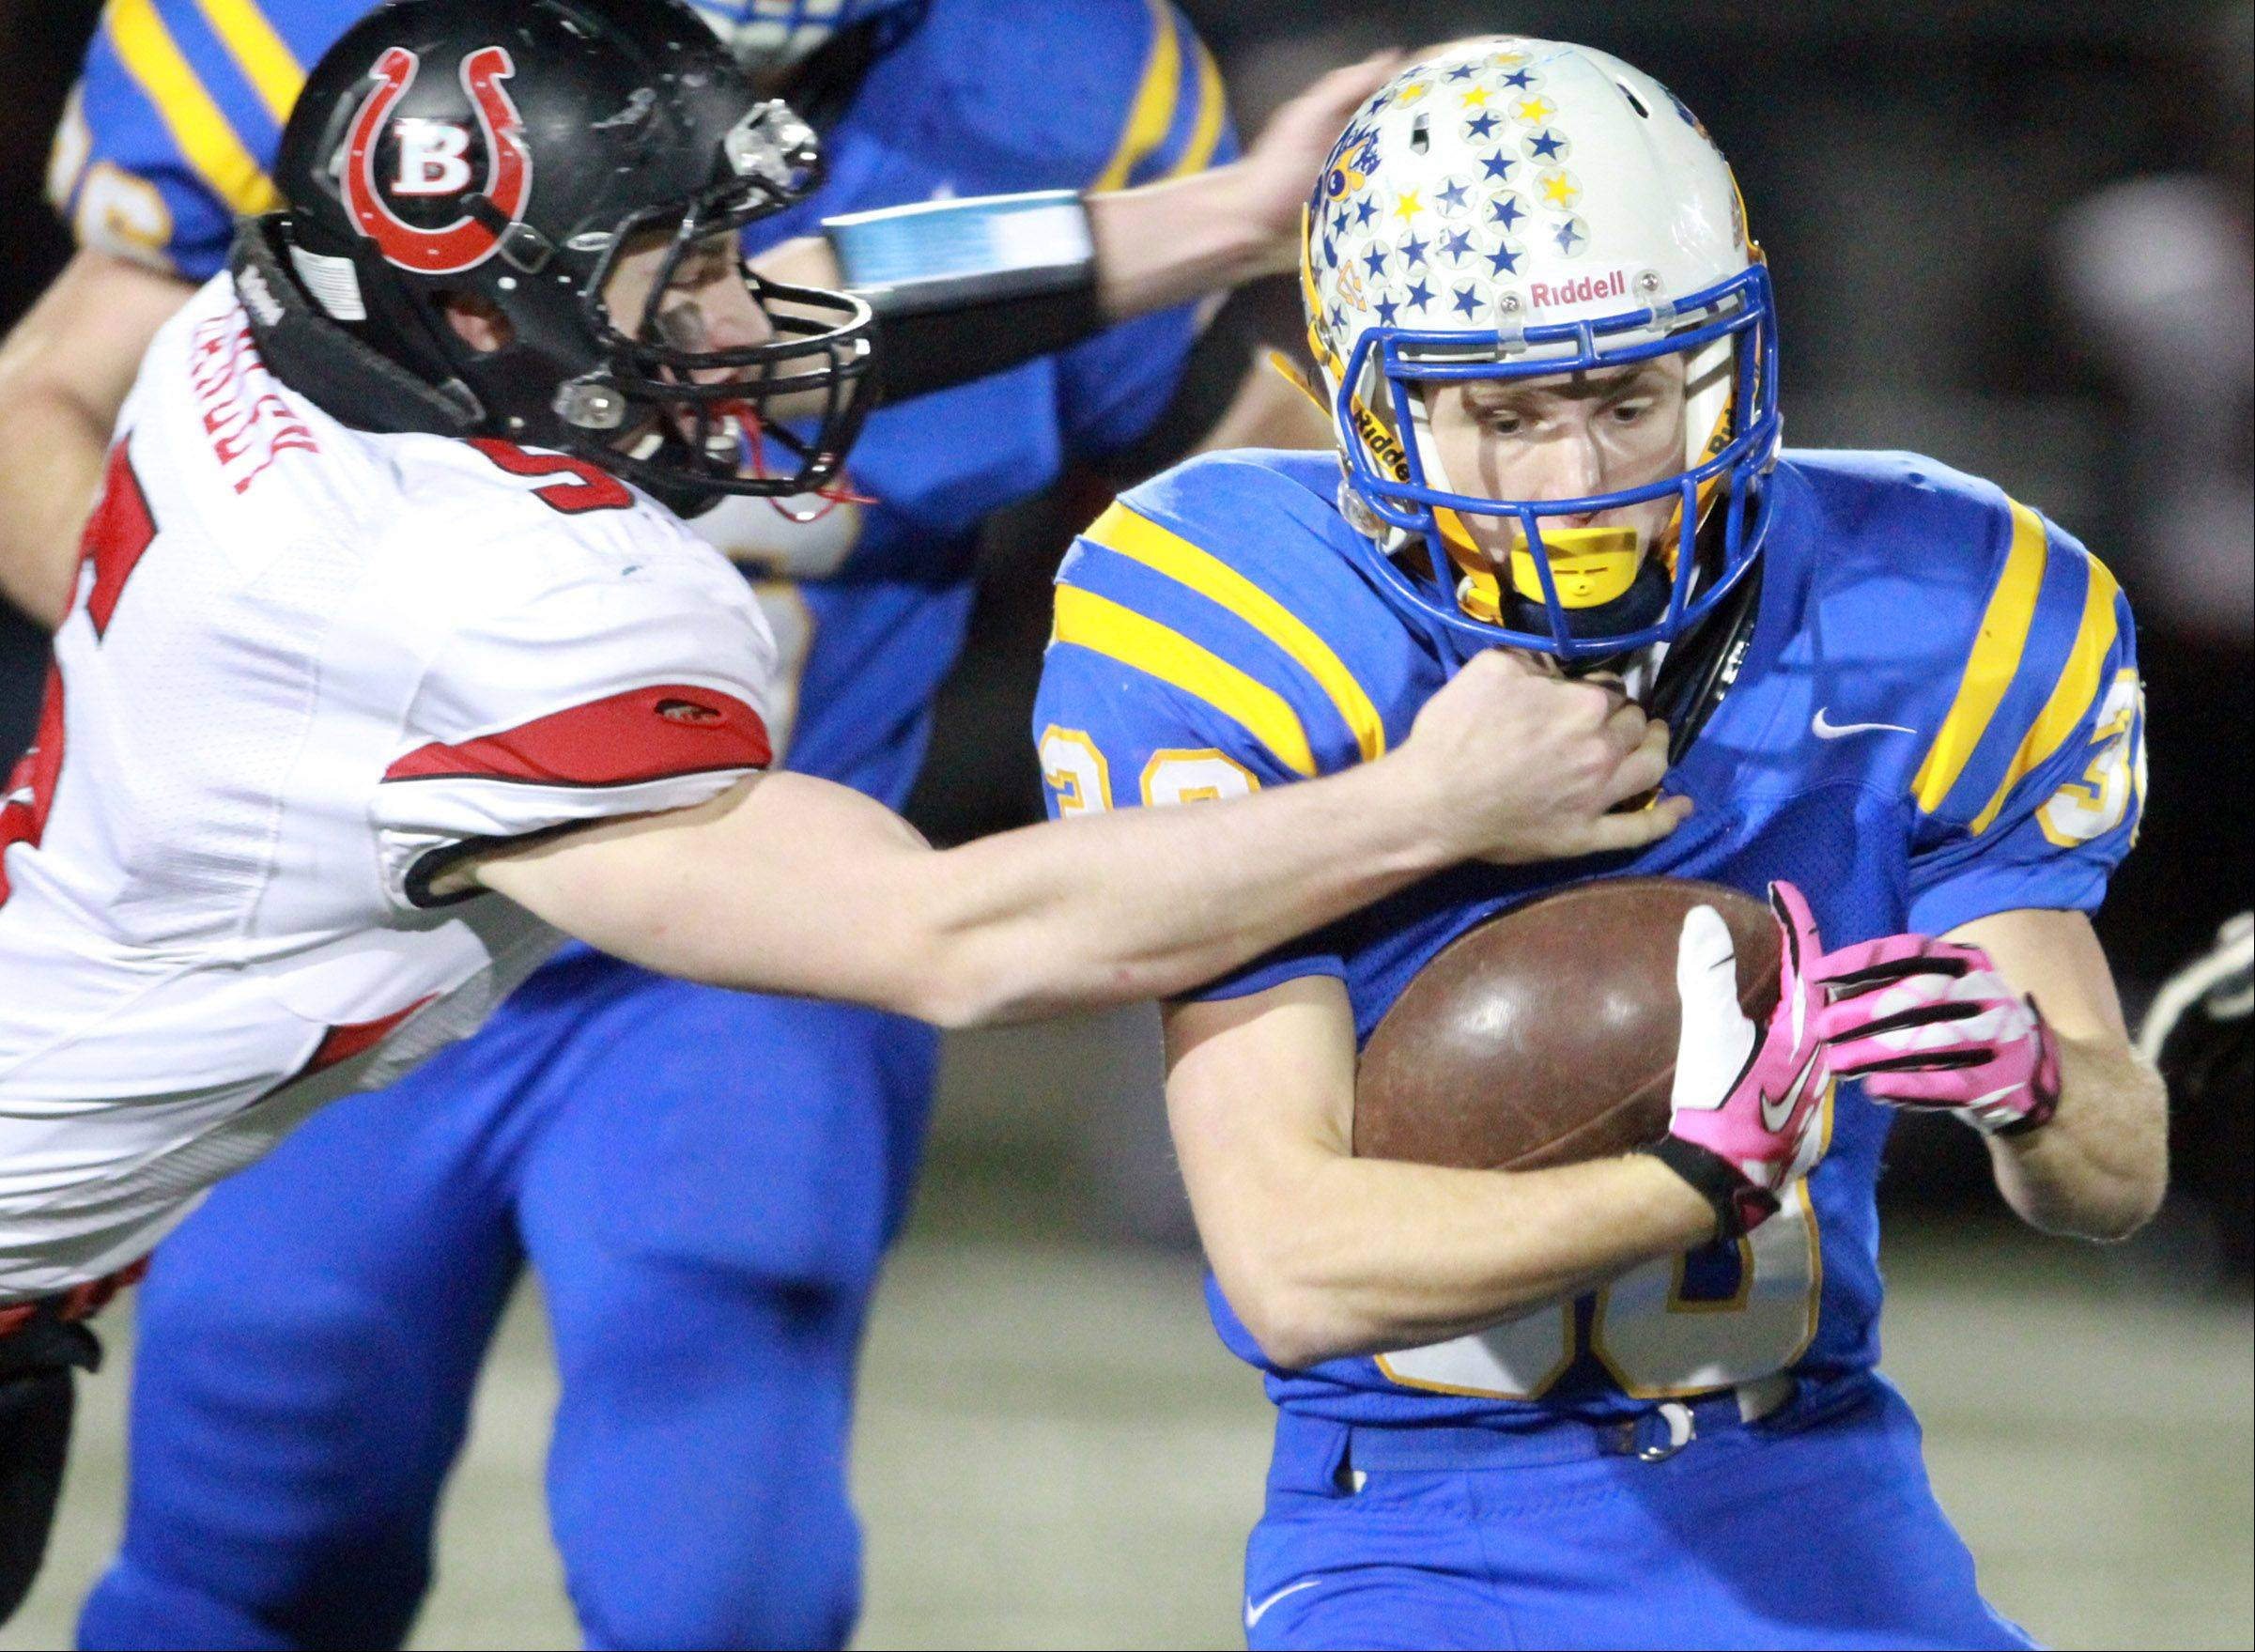 George LeClaire/gleclaire@dailyherald.com Warren running back Maxwell Sorby is dragged down by Barrington defender Dan Hanley in the first half Saturday in Gurnee.